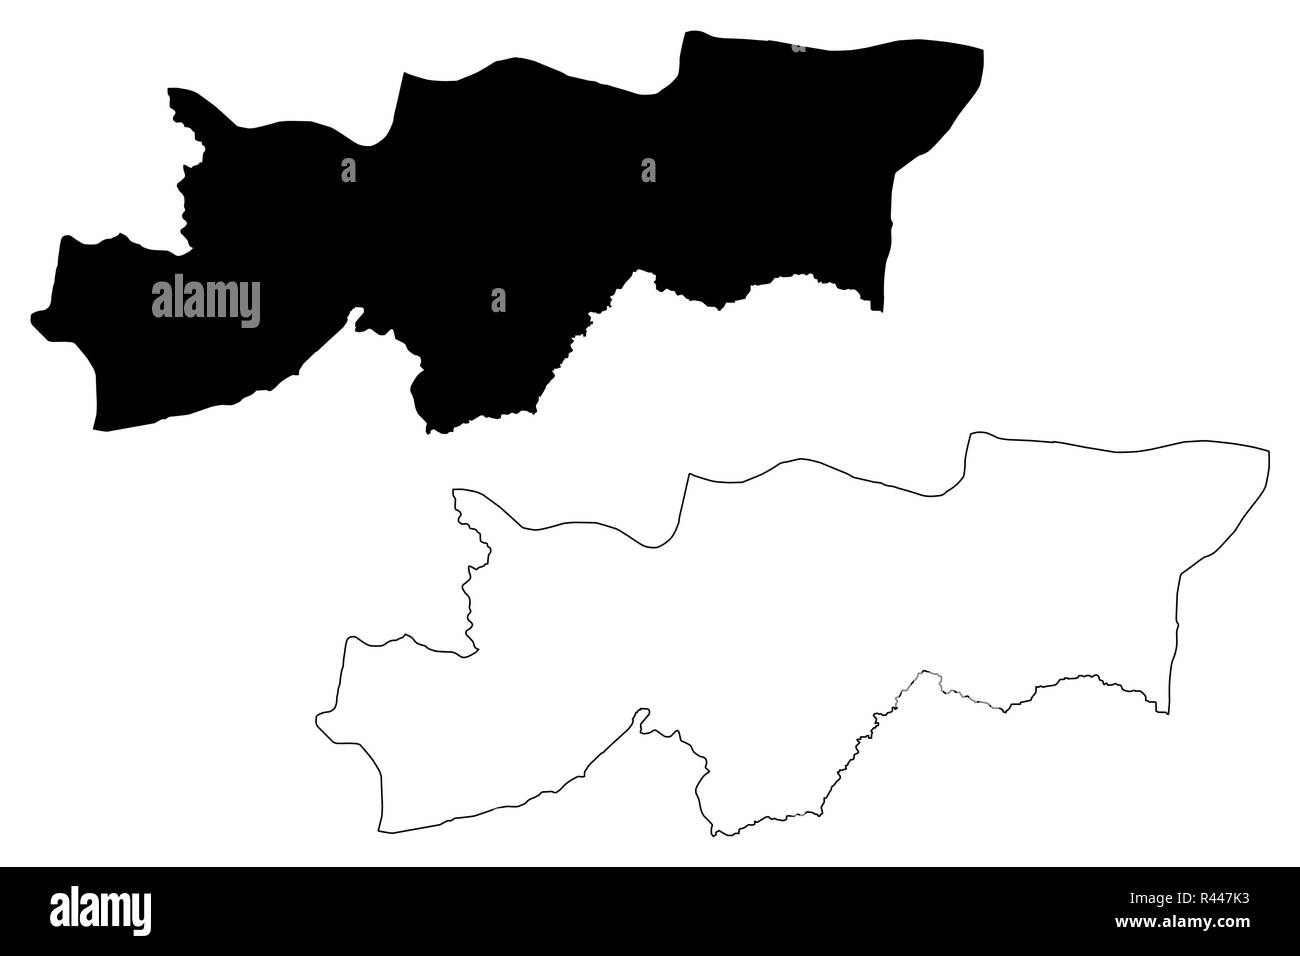 Sirnak (Provinces of the Republic of Turkey) map vector illustration, scribble sketch Sirnak ili map - Stock Image